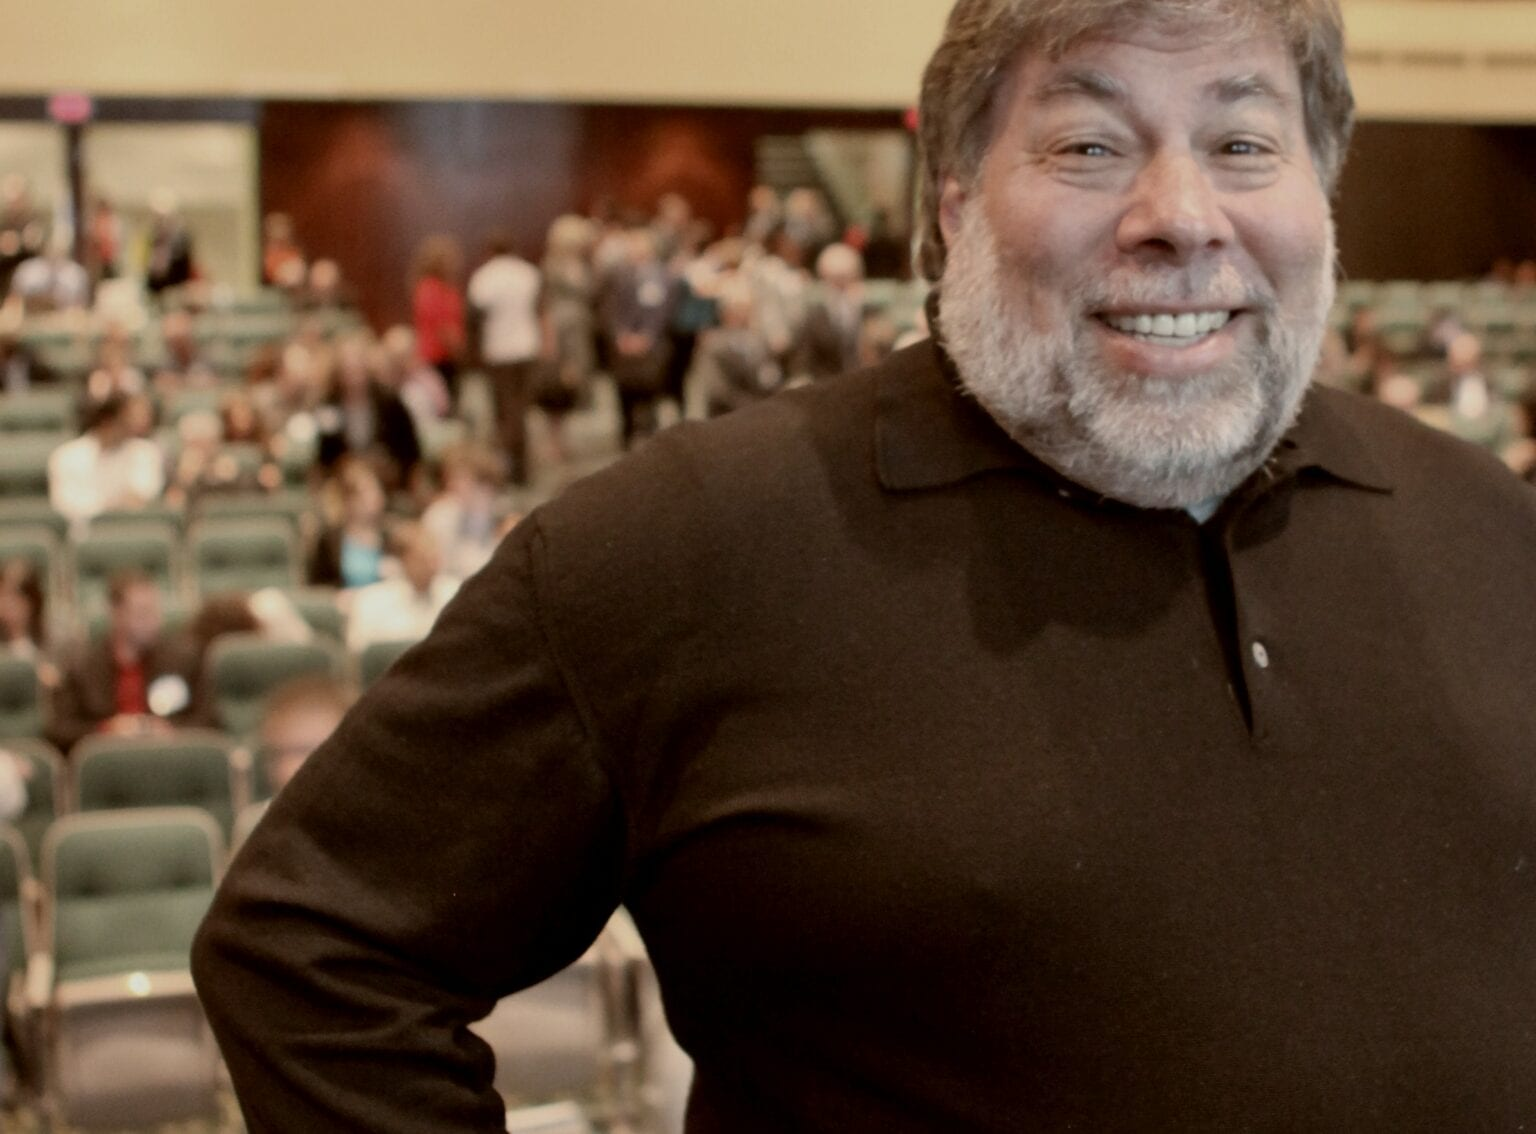 A lack of respect for the Apple II leads to Steve Wozniak's departure from the company he founded.